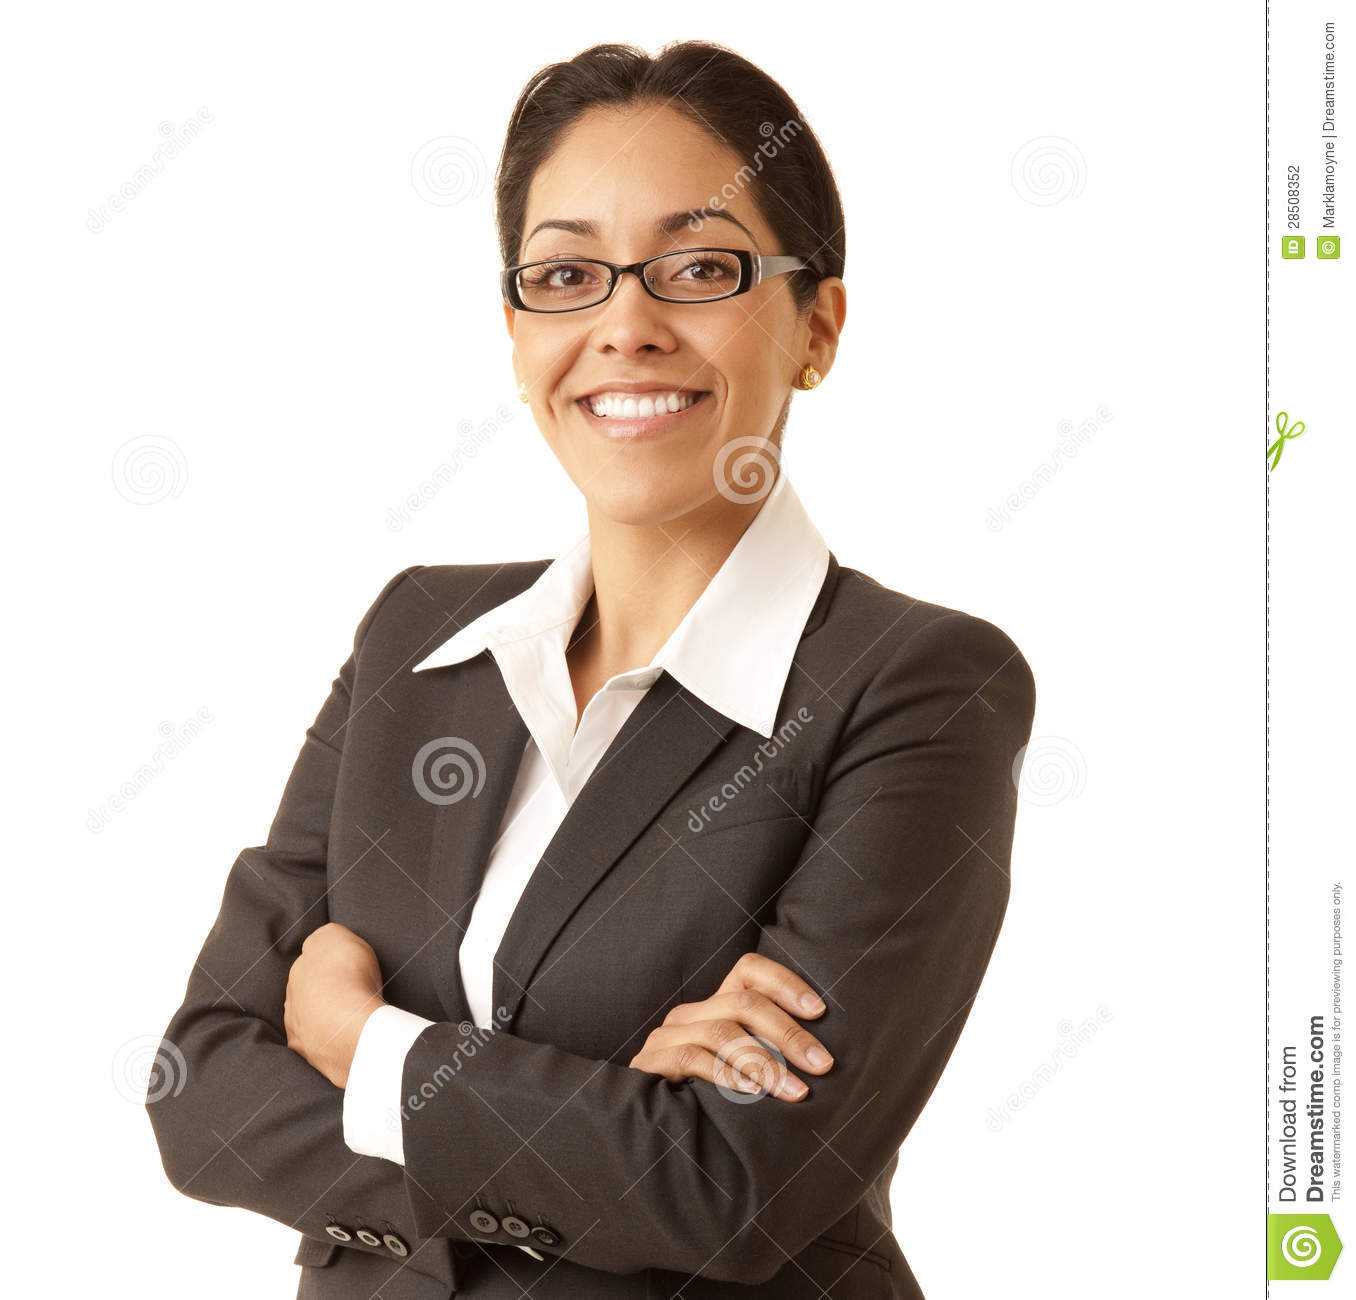 Confident Hispanic business woman